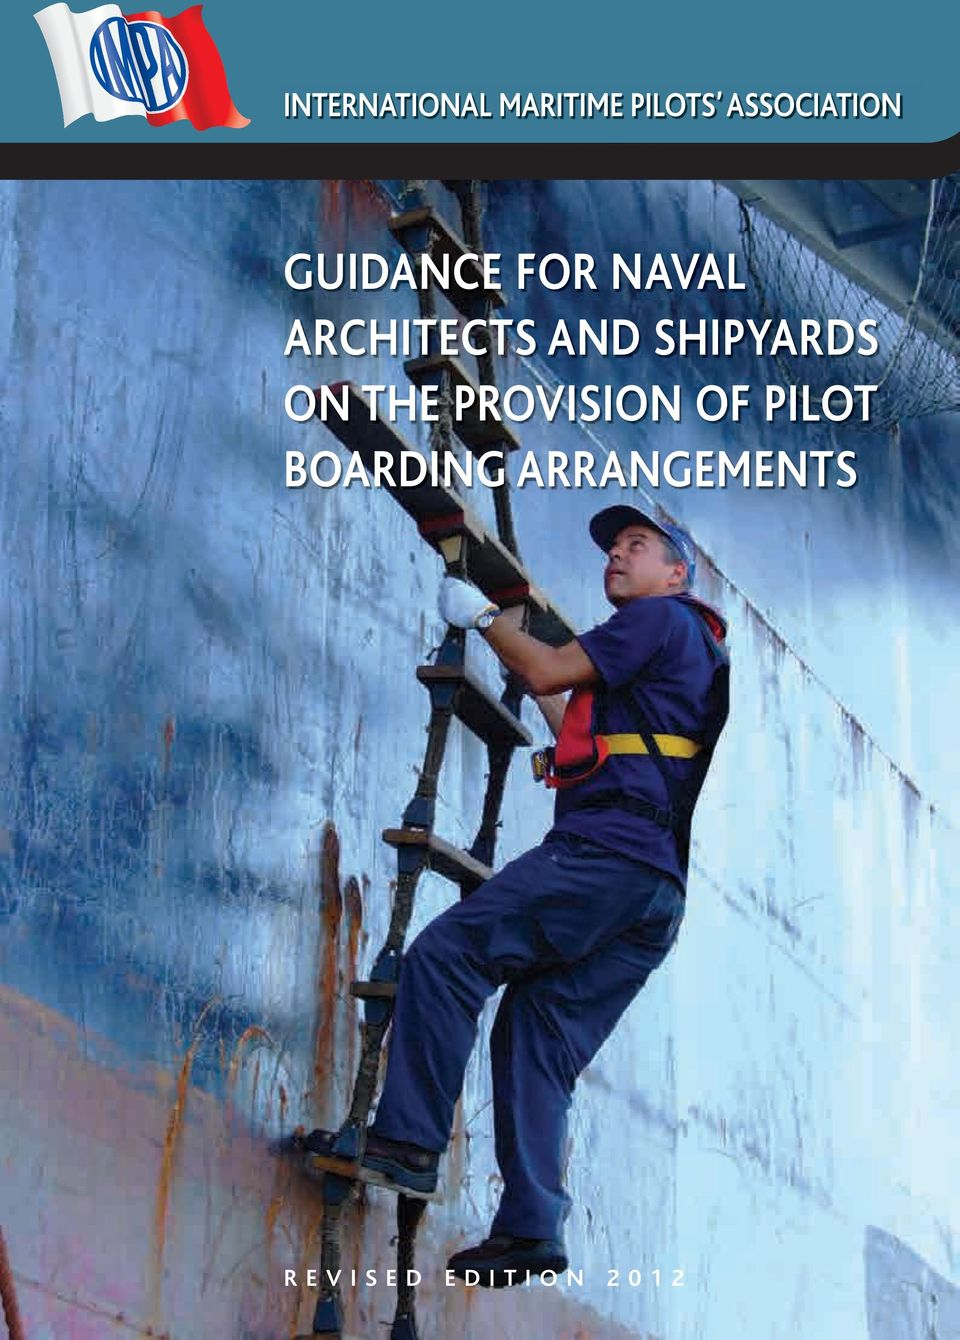 SHIPYARDS ON THE PROVISION OF PILOT